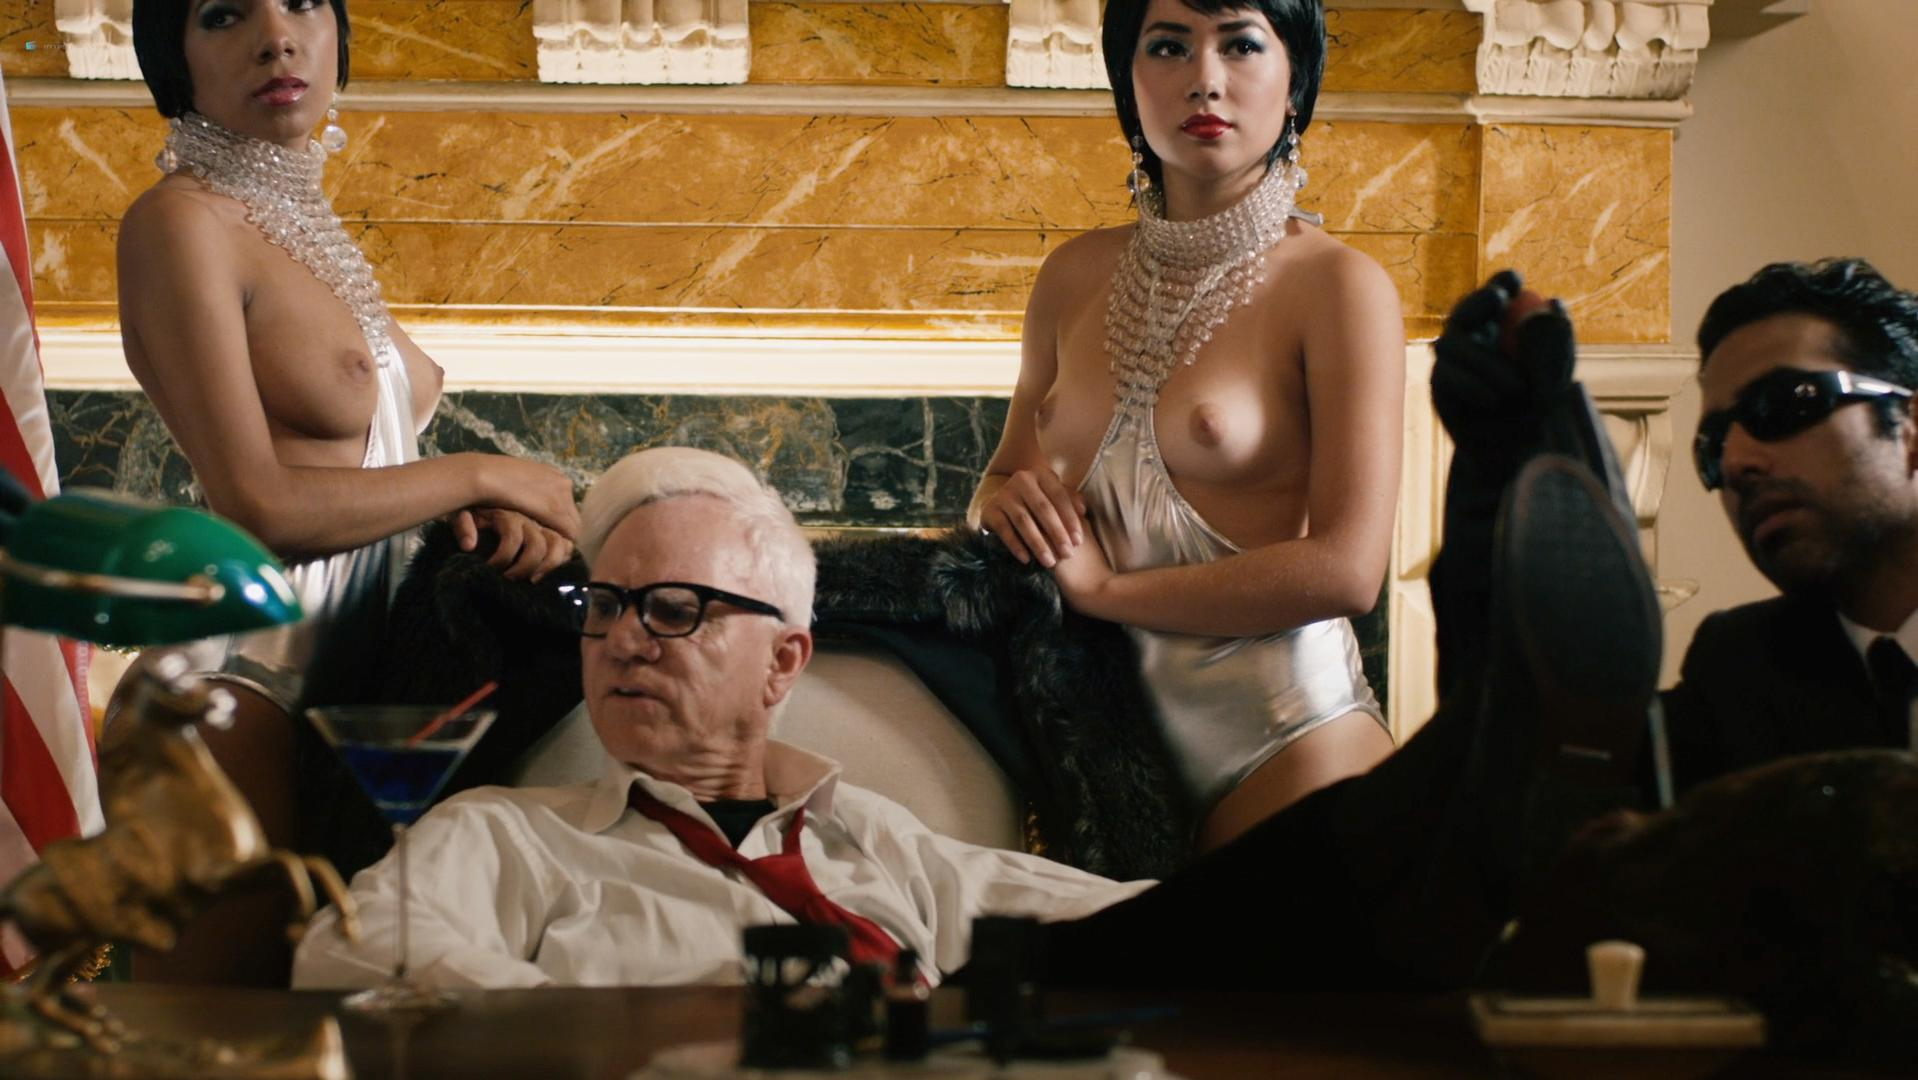 Anessa Ramsey nude, Marci Miller sexy, Leslie Shaw sexy - Death Race 2050 (2017)